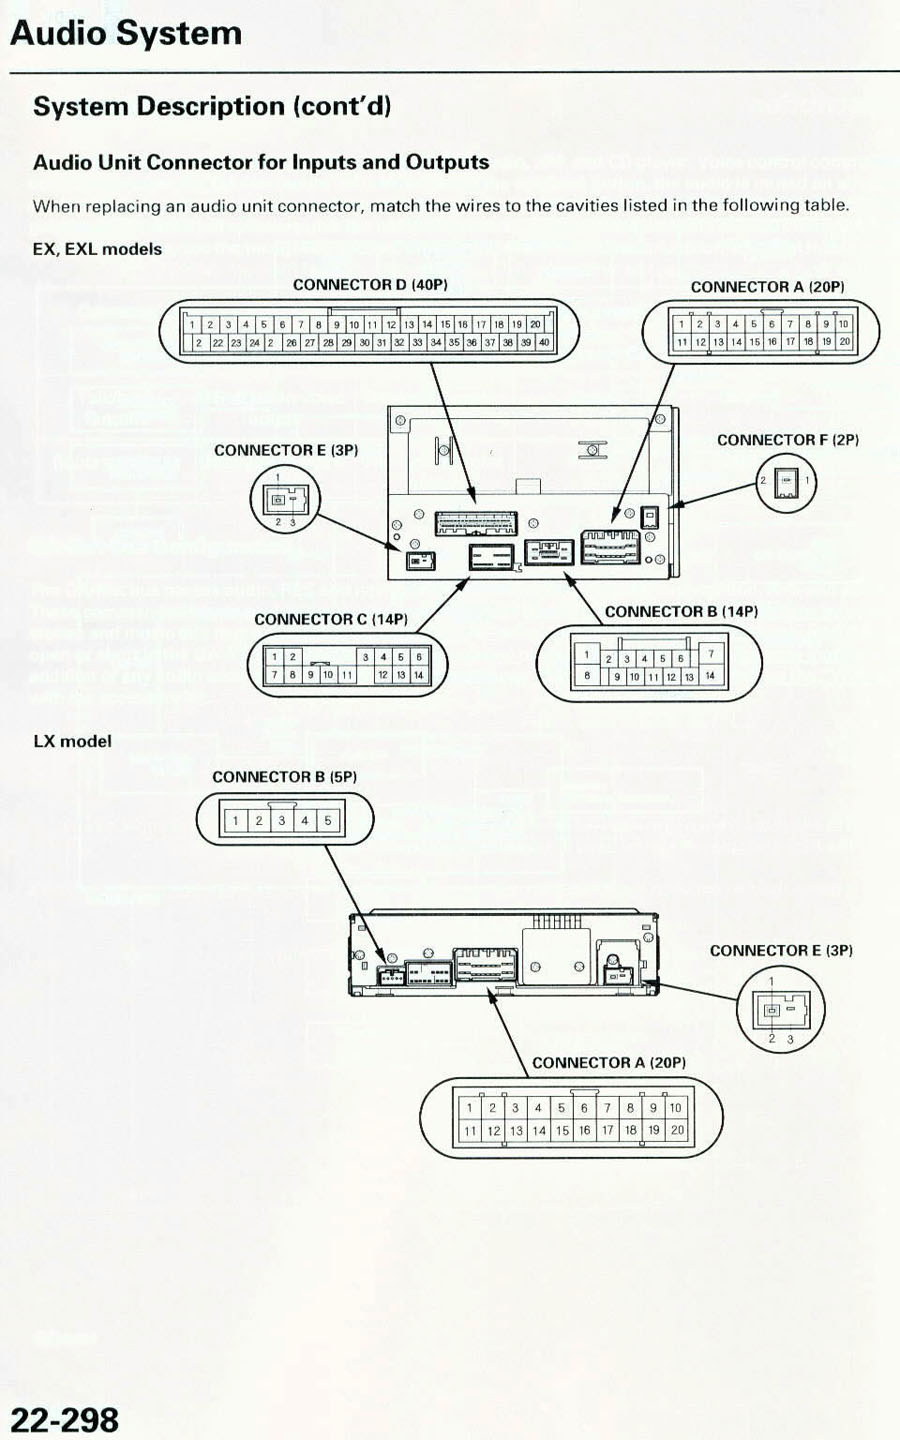 32969d1200063279 re factory subwoofer aftermarket hu audio_connector 2006 re factory subwoofer and aftermarket hu honda pilot honda res radio wiring diagram at alyssarenee.co